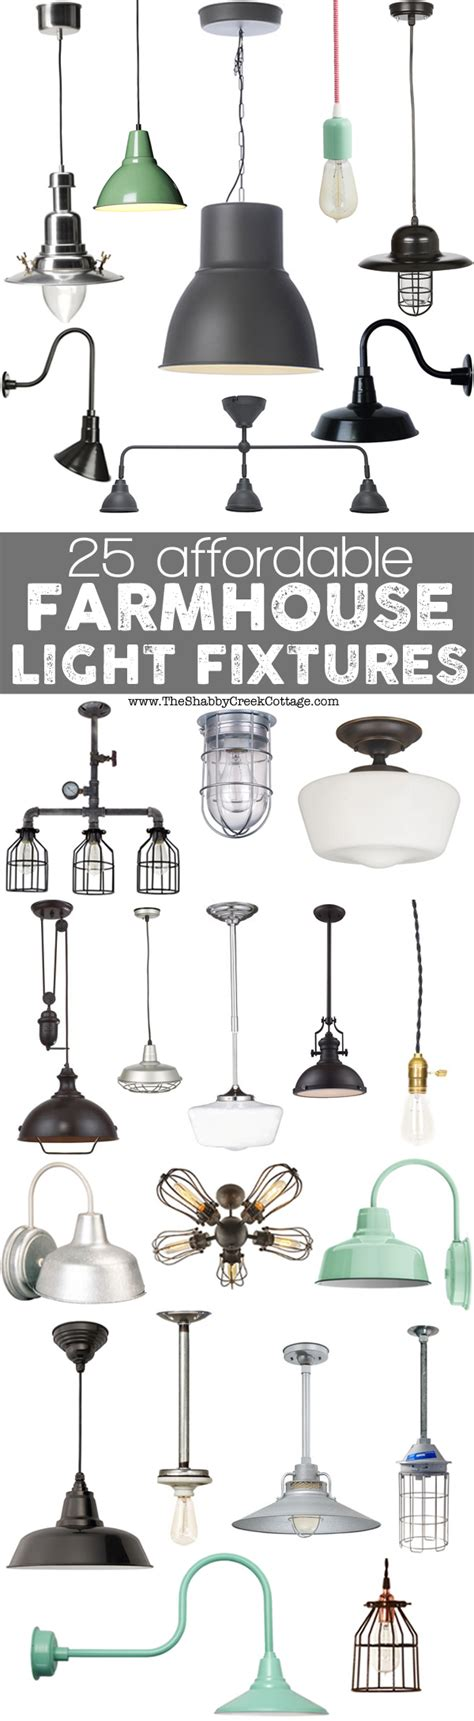 farm style light fixtures 25 affordable farmhouse light fixtures